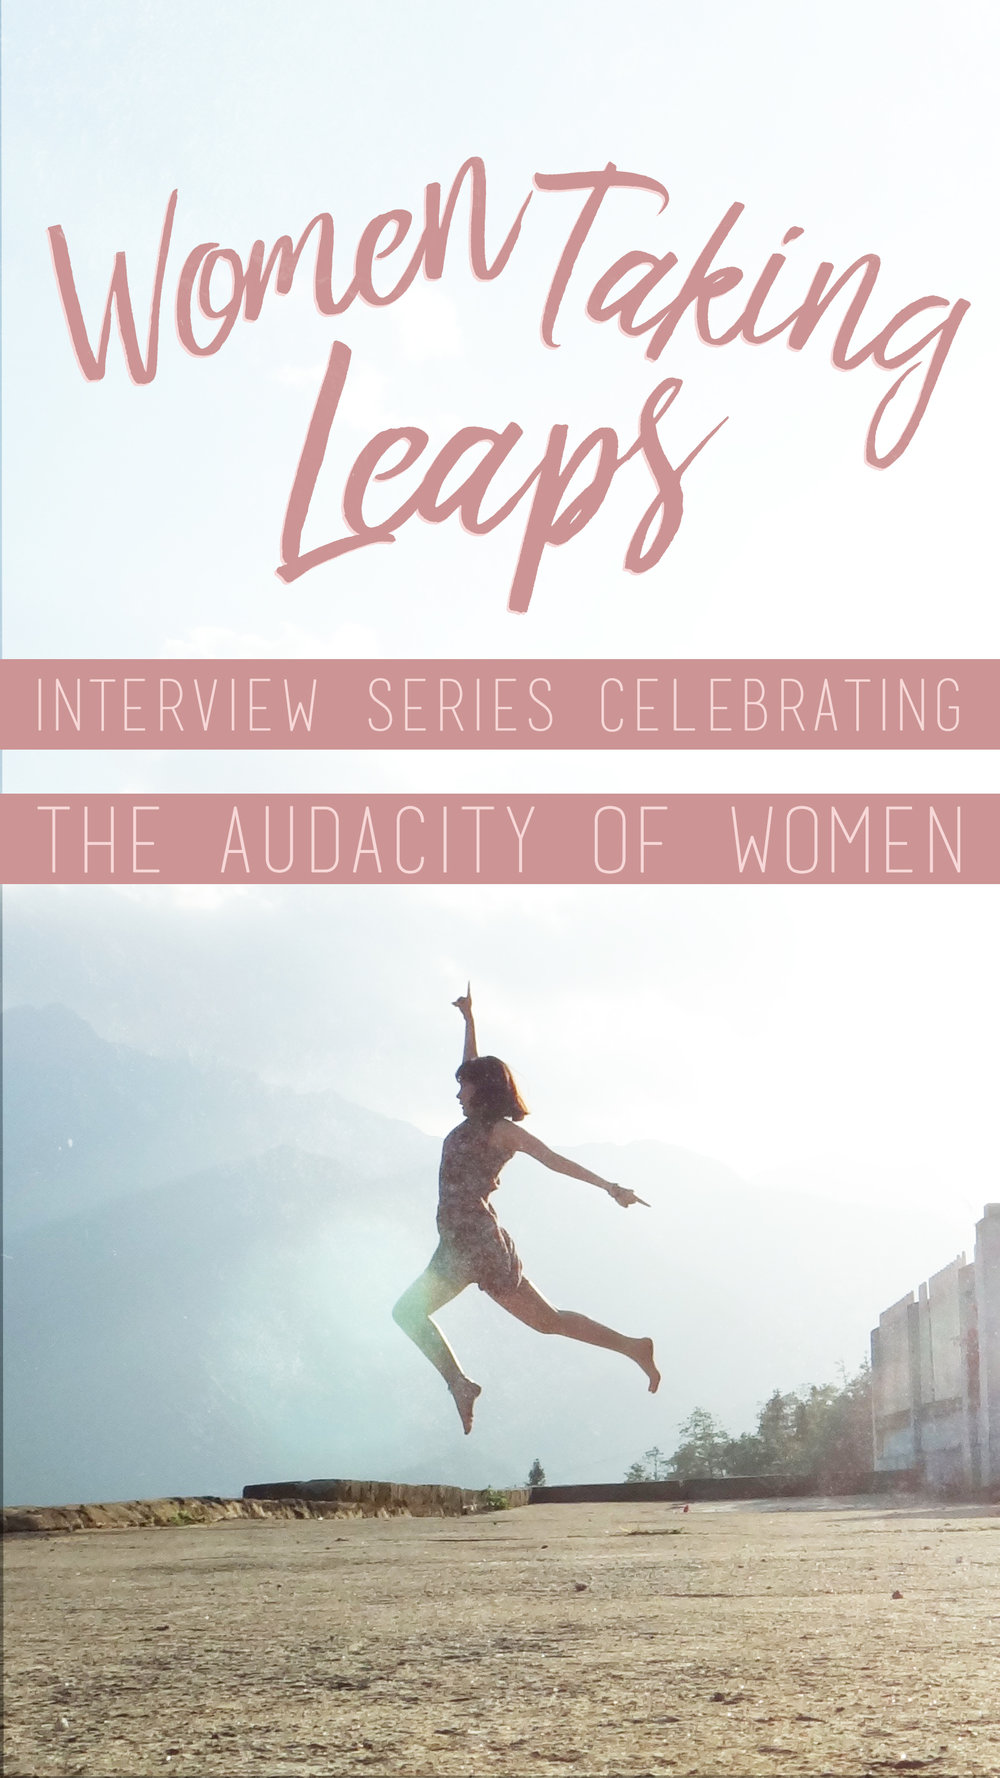 Instagram story template for promoting the Women Taking Leaps series. Original PSD file allows for all text to be edited for personalization.